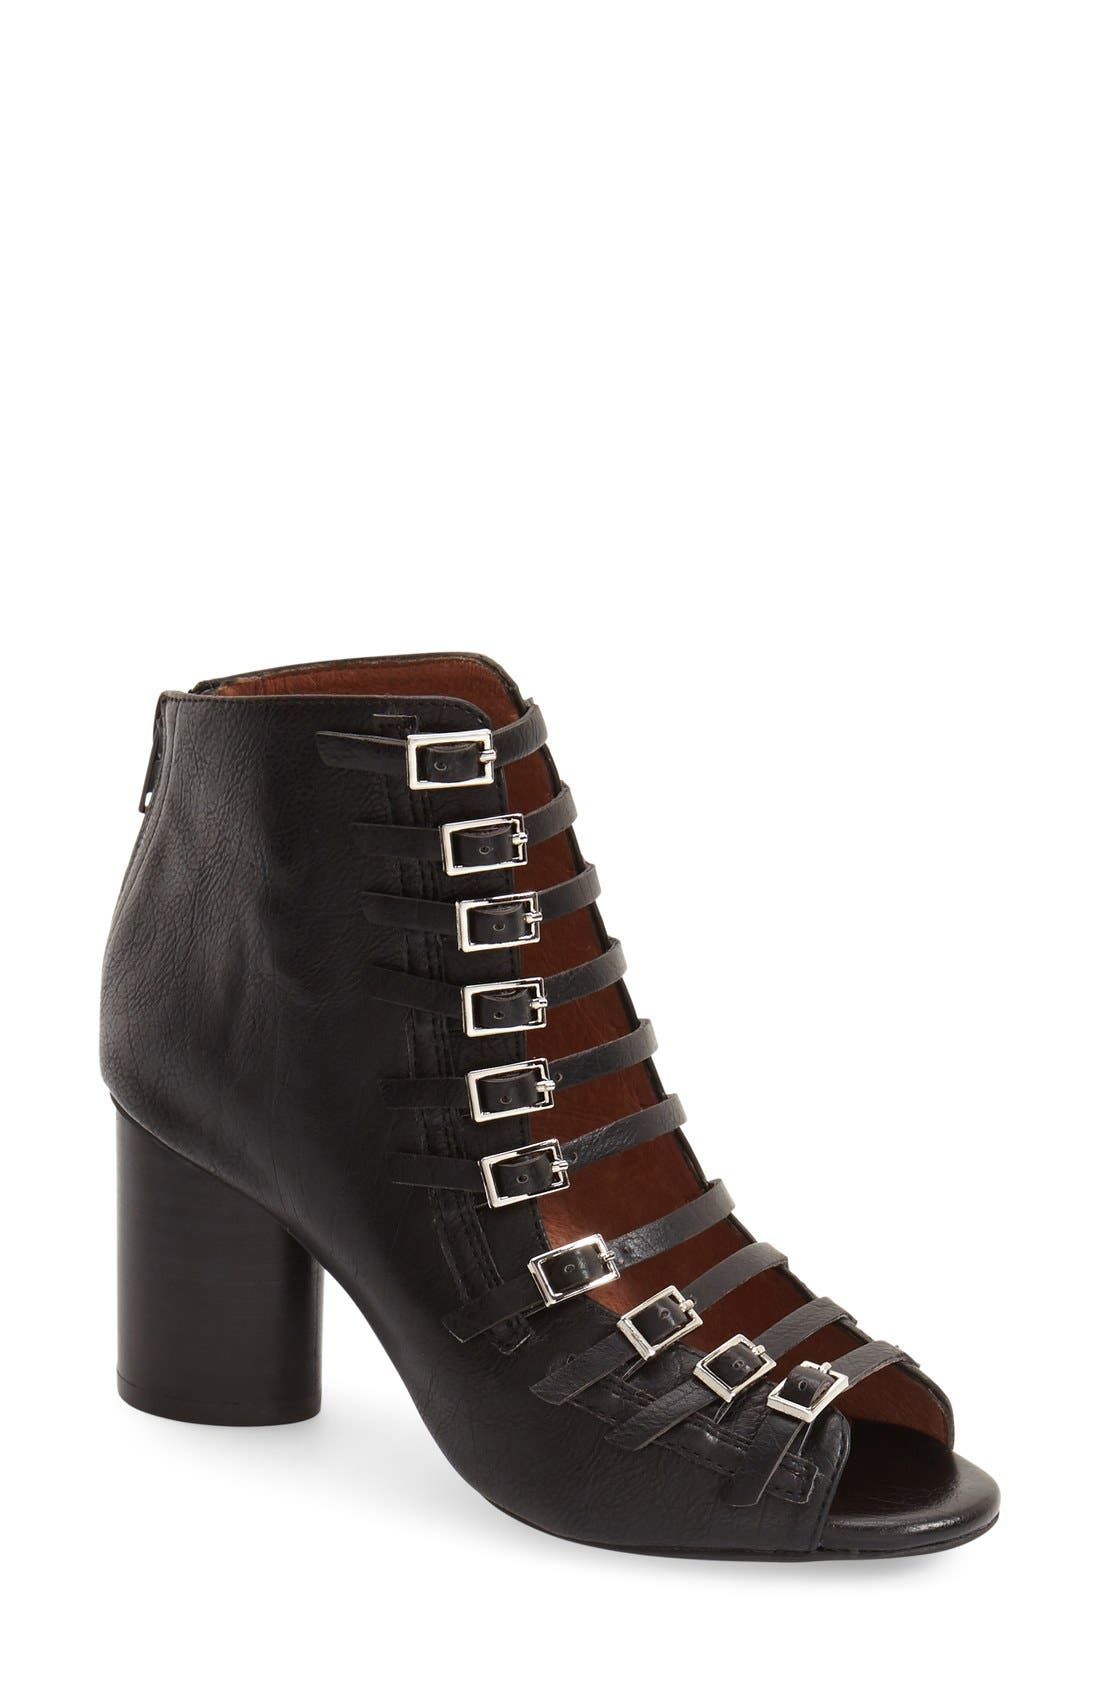 JEFFREY CAMPBELL 'Houdini II' Cage Sandal, Main, color, 001